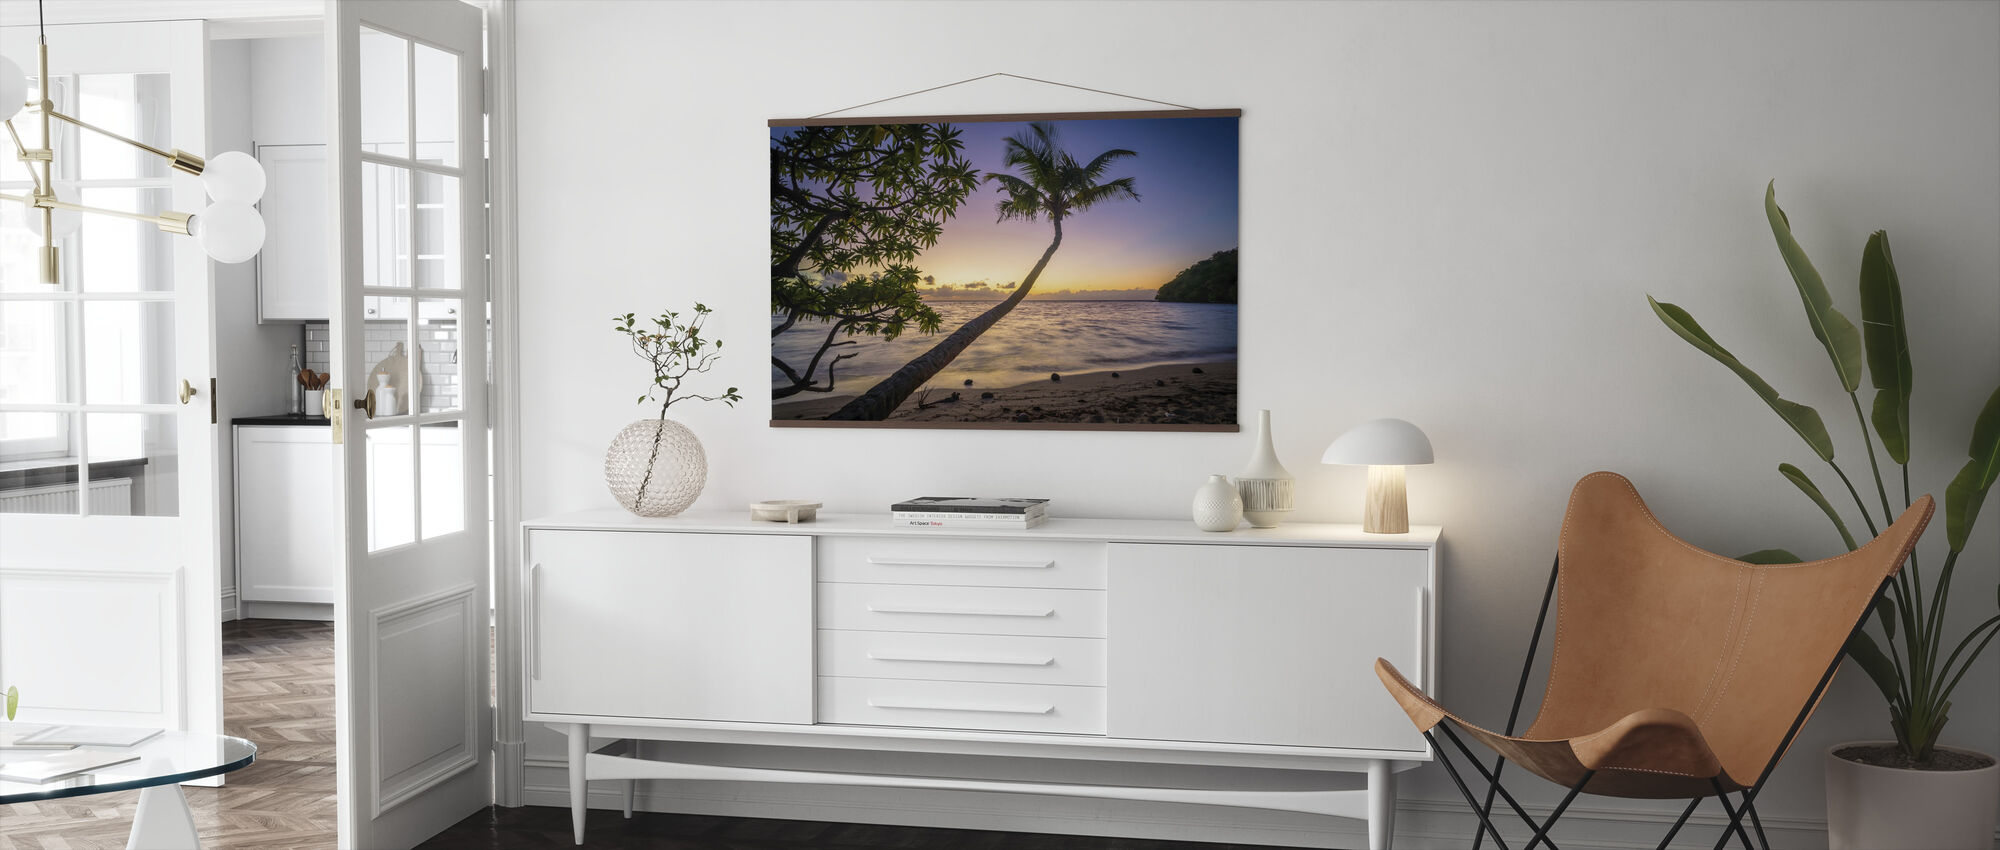 Sunset Beach - Poster - Living Room